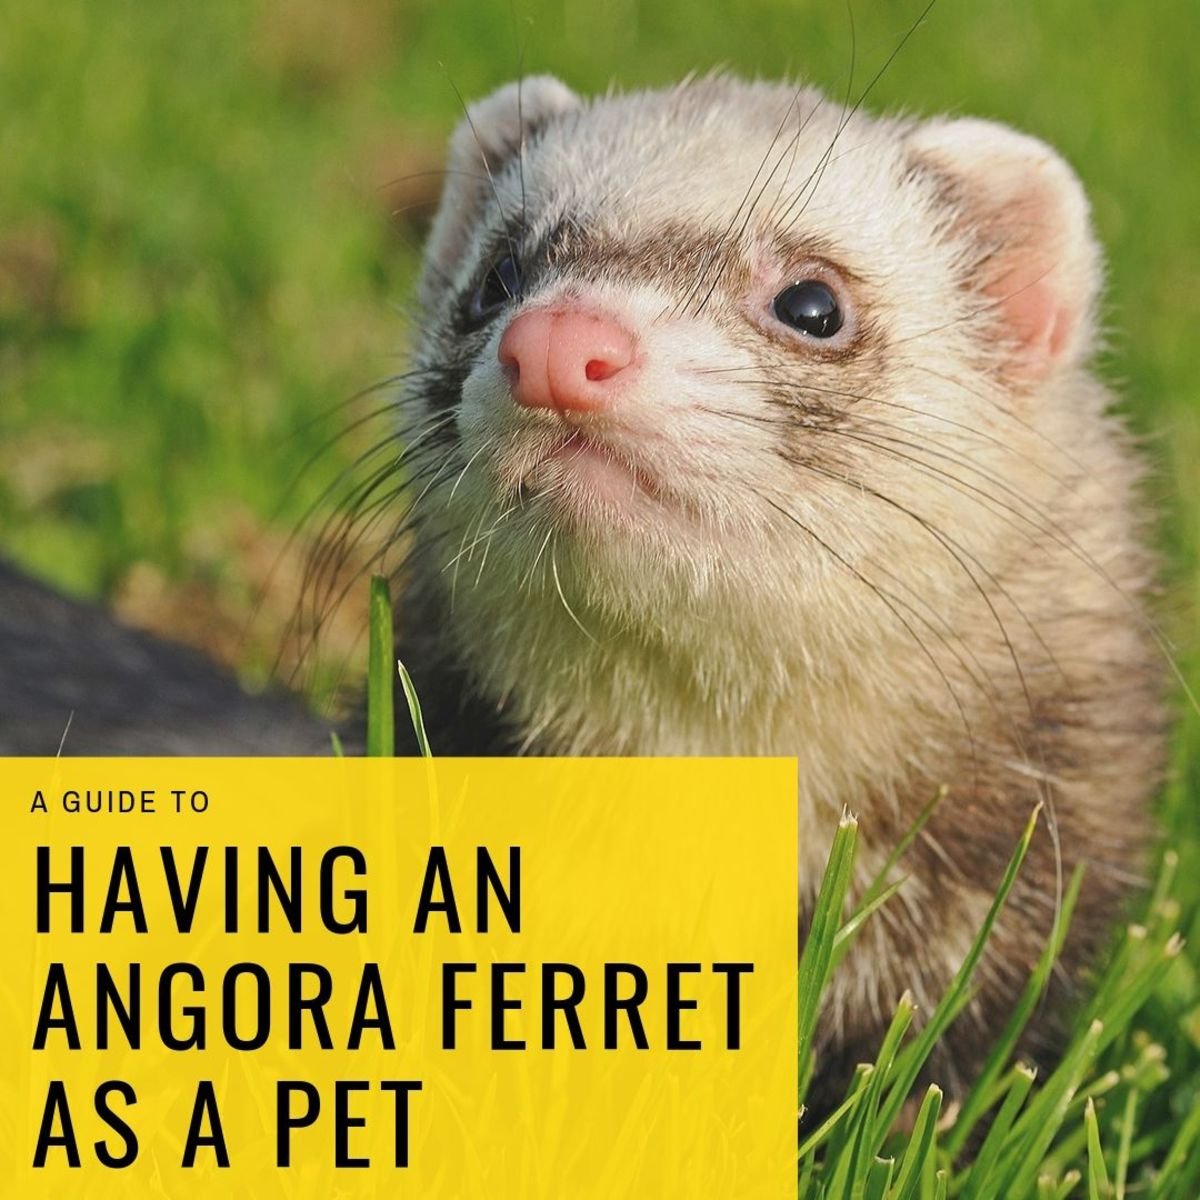 Angora ferrets can make wonderful pets.